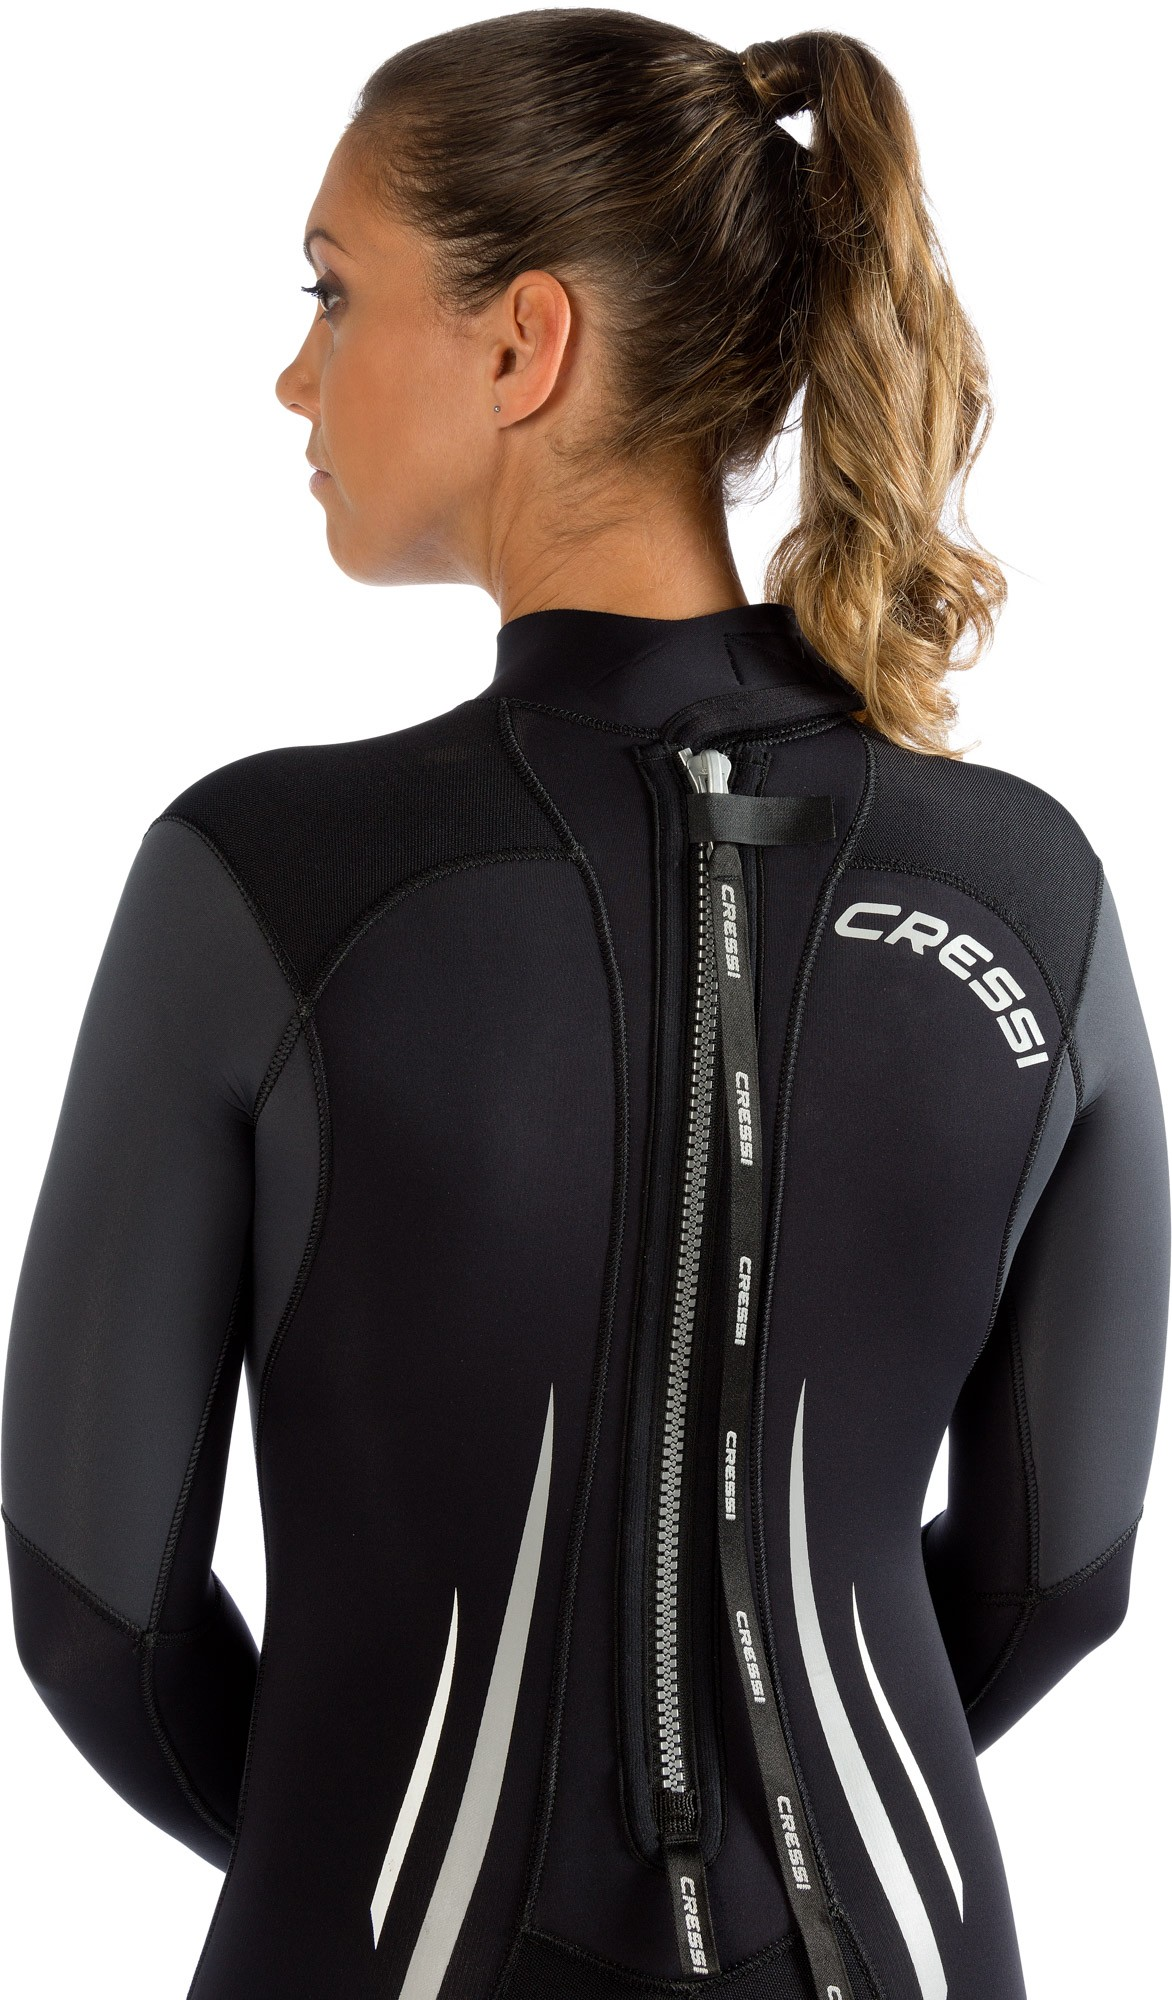 COMFORT Lady Wetsuit 5 mm